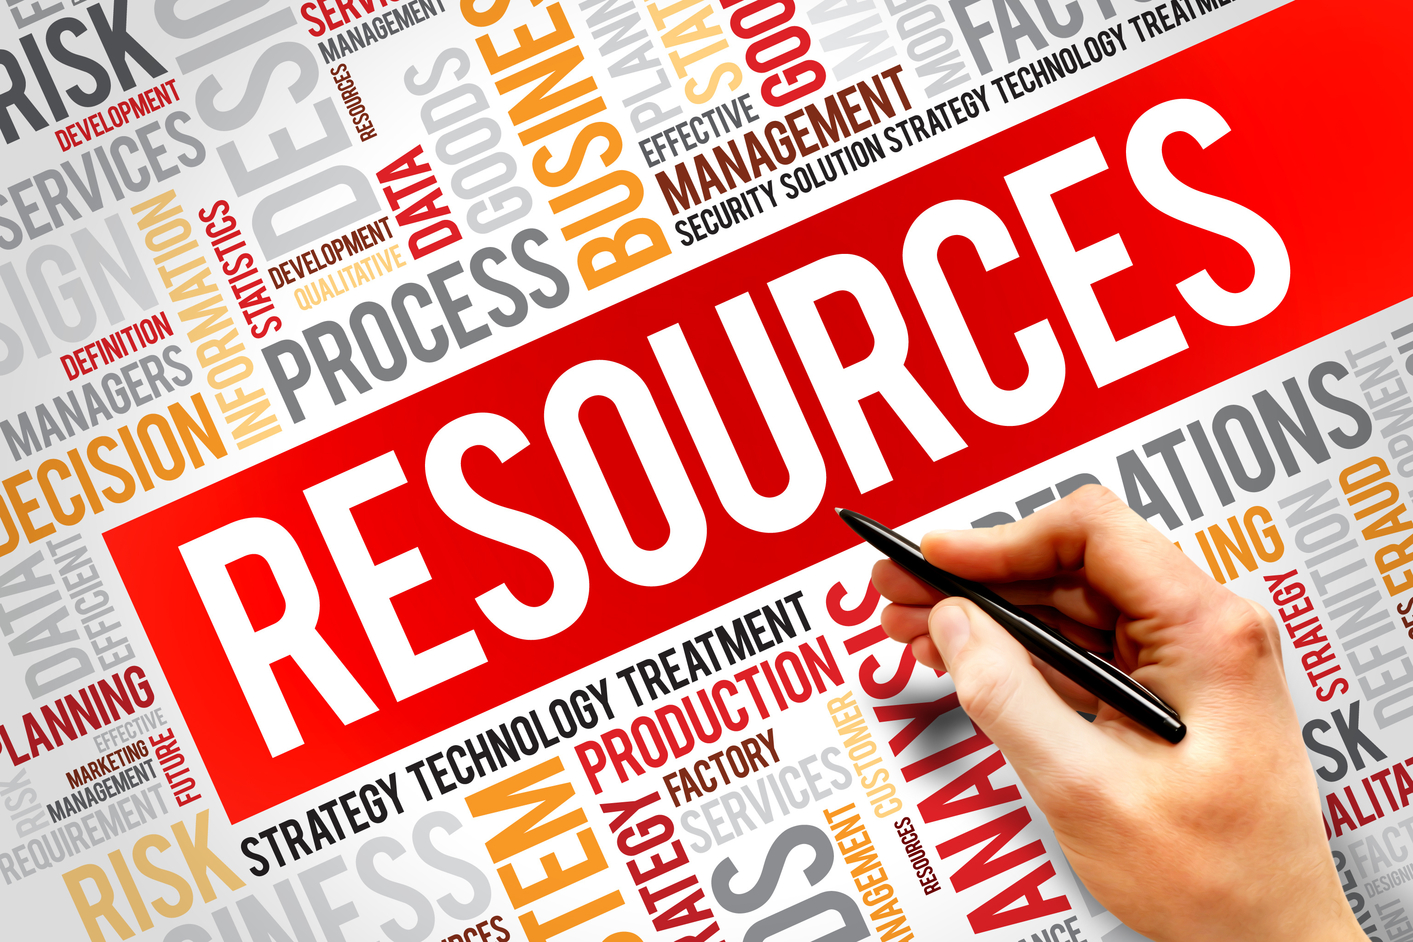 facilities management resources